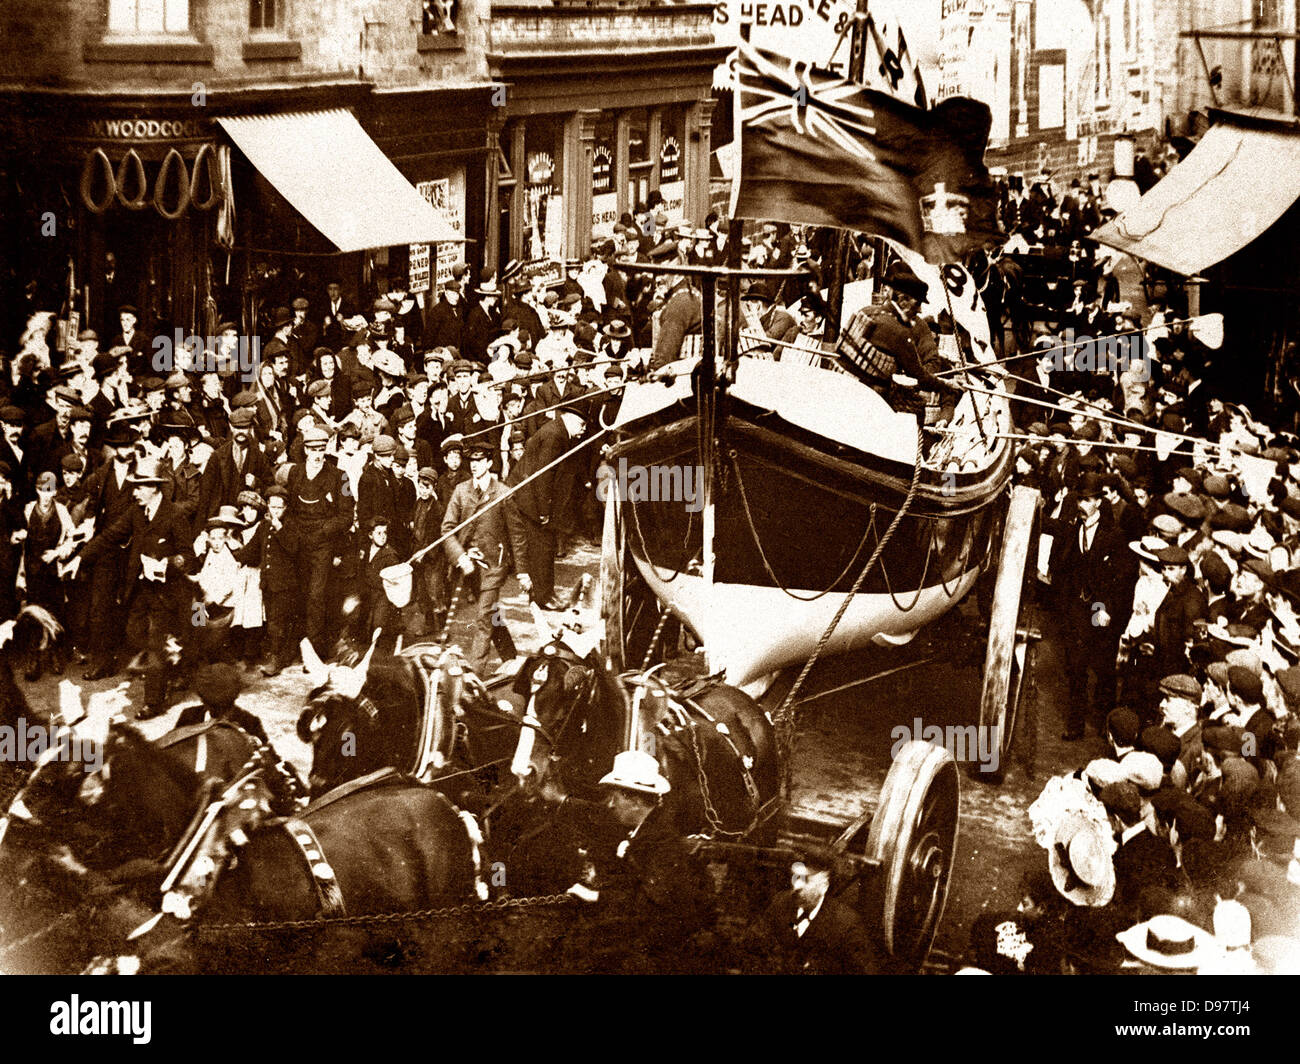 Barnsley Lifeboat procession in 1904 - Stock Image